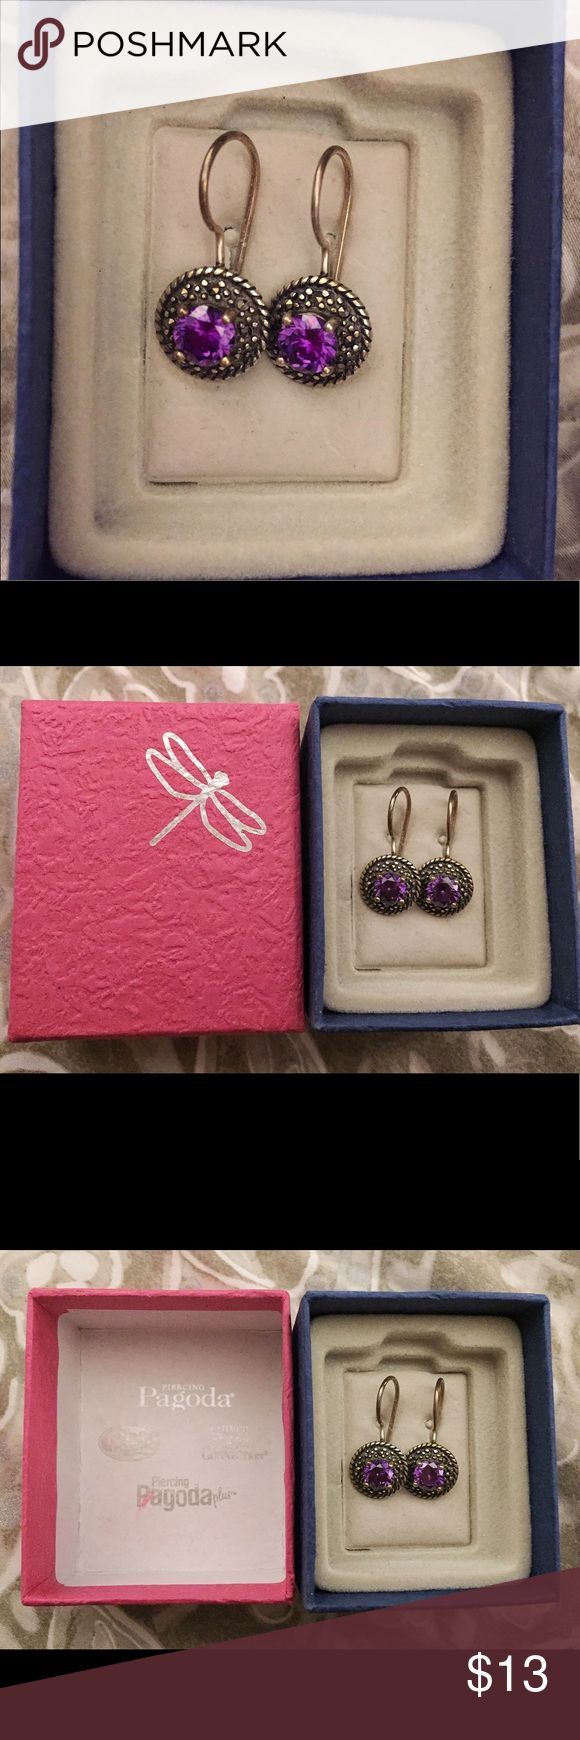 Vintage style purple cz earrings Brand new, never worn gorgeous color purple. These earrings have no backings so you never have to worry about losing them. Just squeeze the clasp and rest it under the hook! Piercing Pagoda Jewelry Earrings